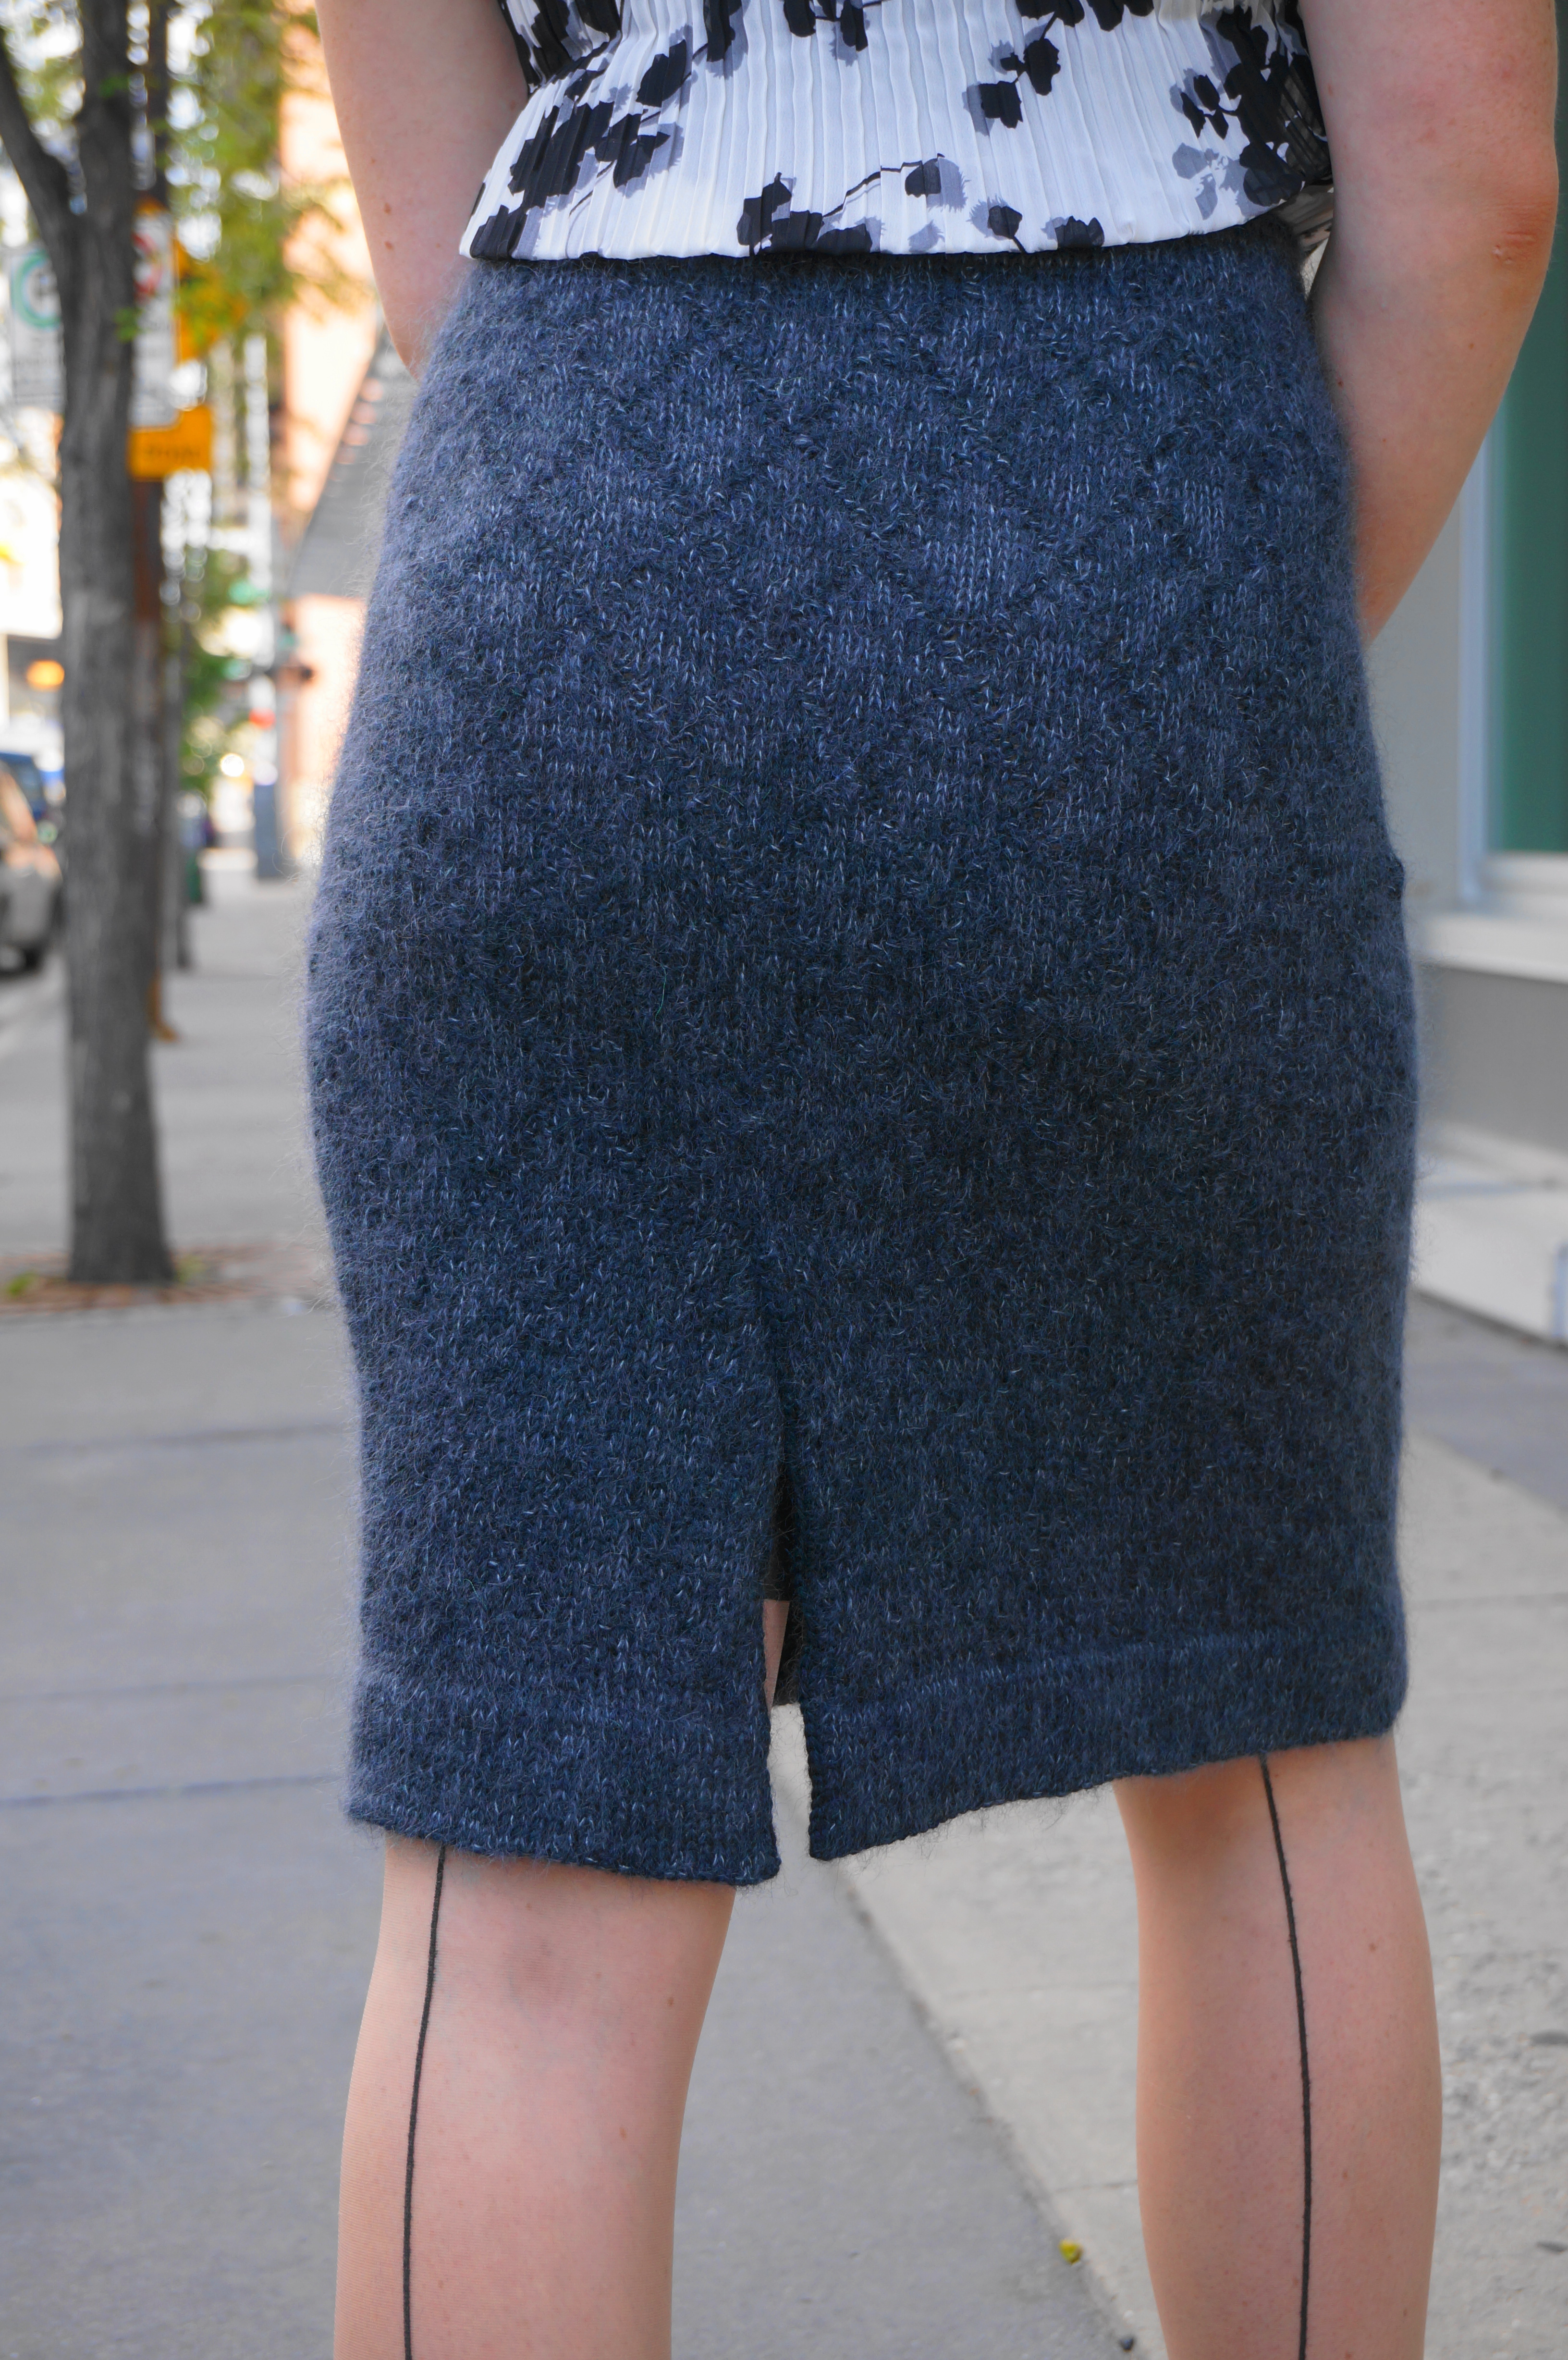 Magnificent Knitted Skirt Patterns Embellishment - Sewing Pattern ...